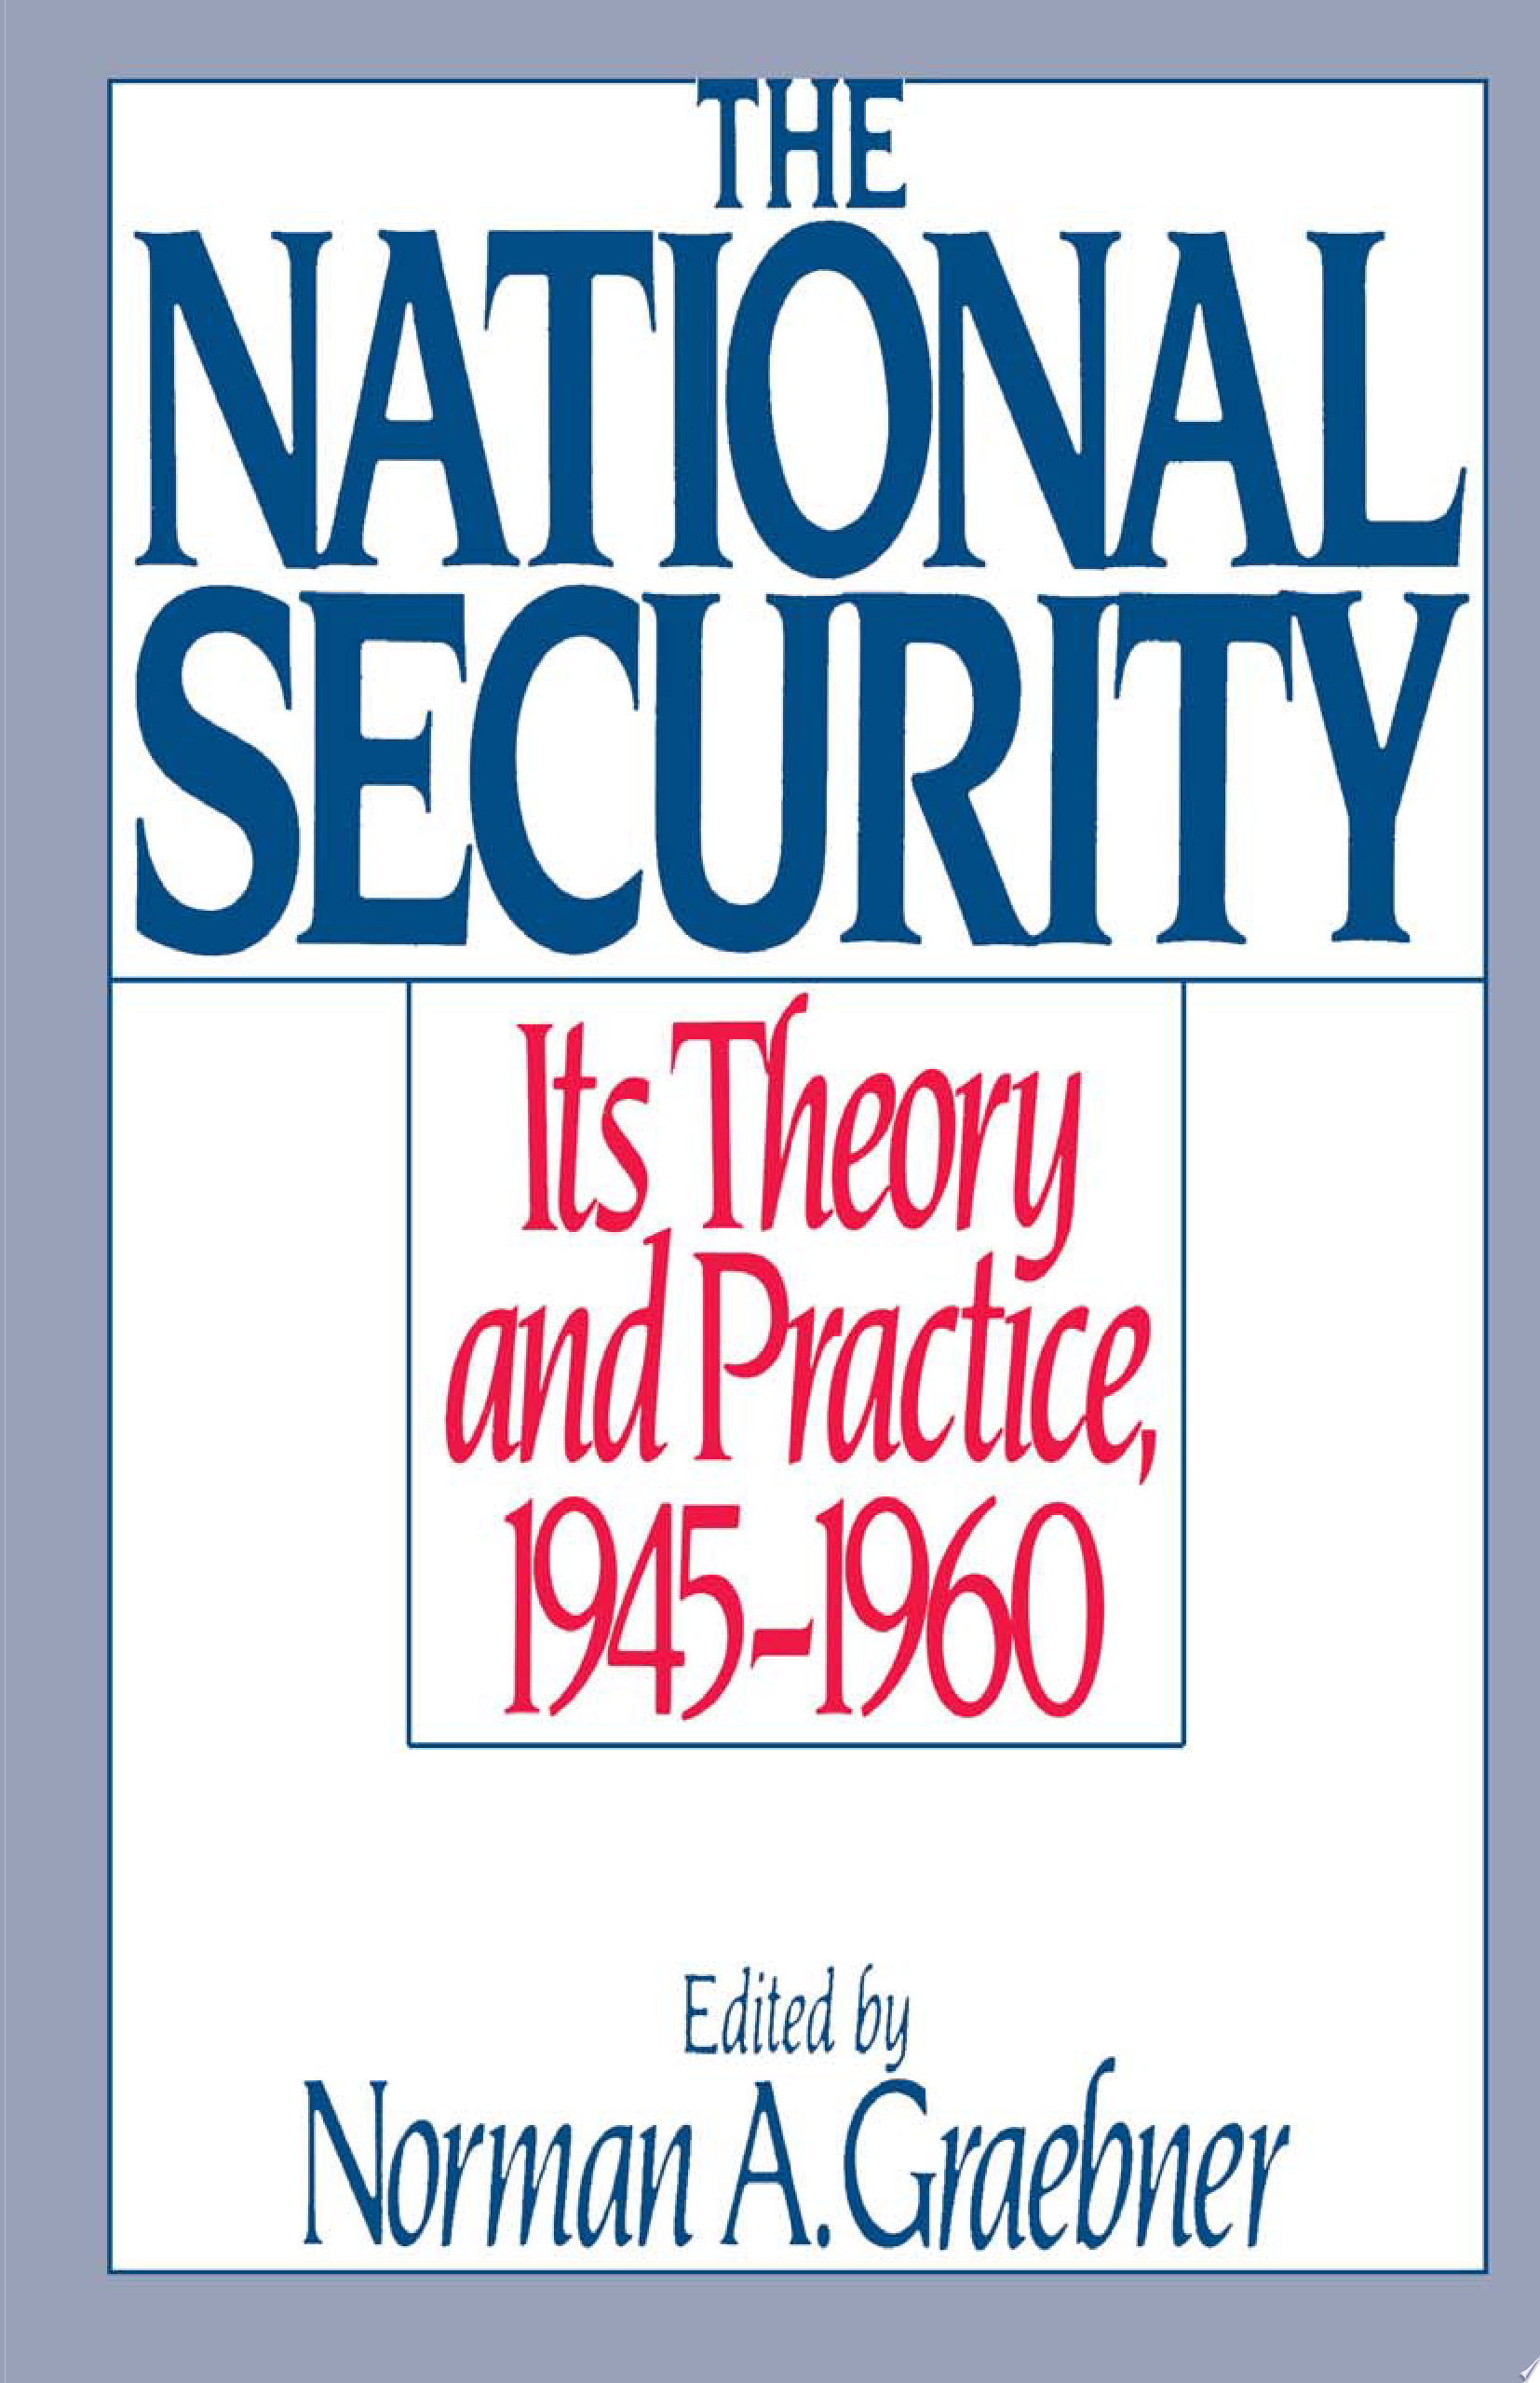 The National Security : Its Theory and Practice, 1945-1960